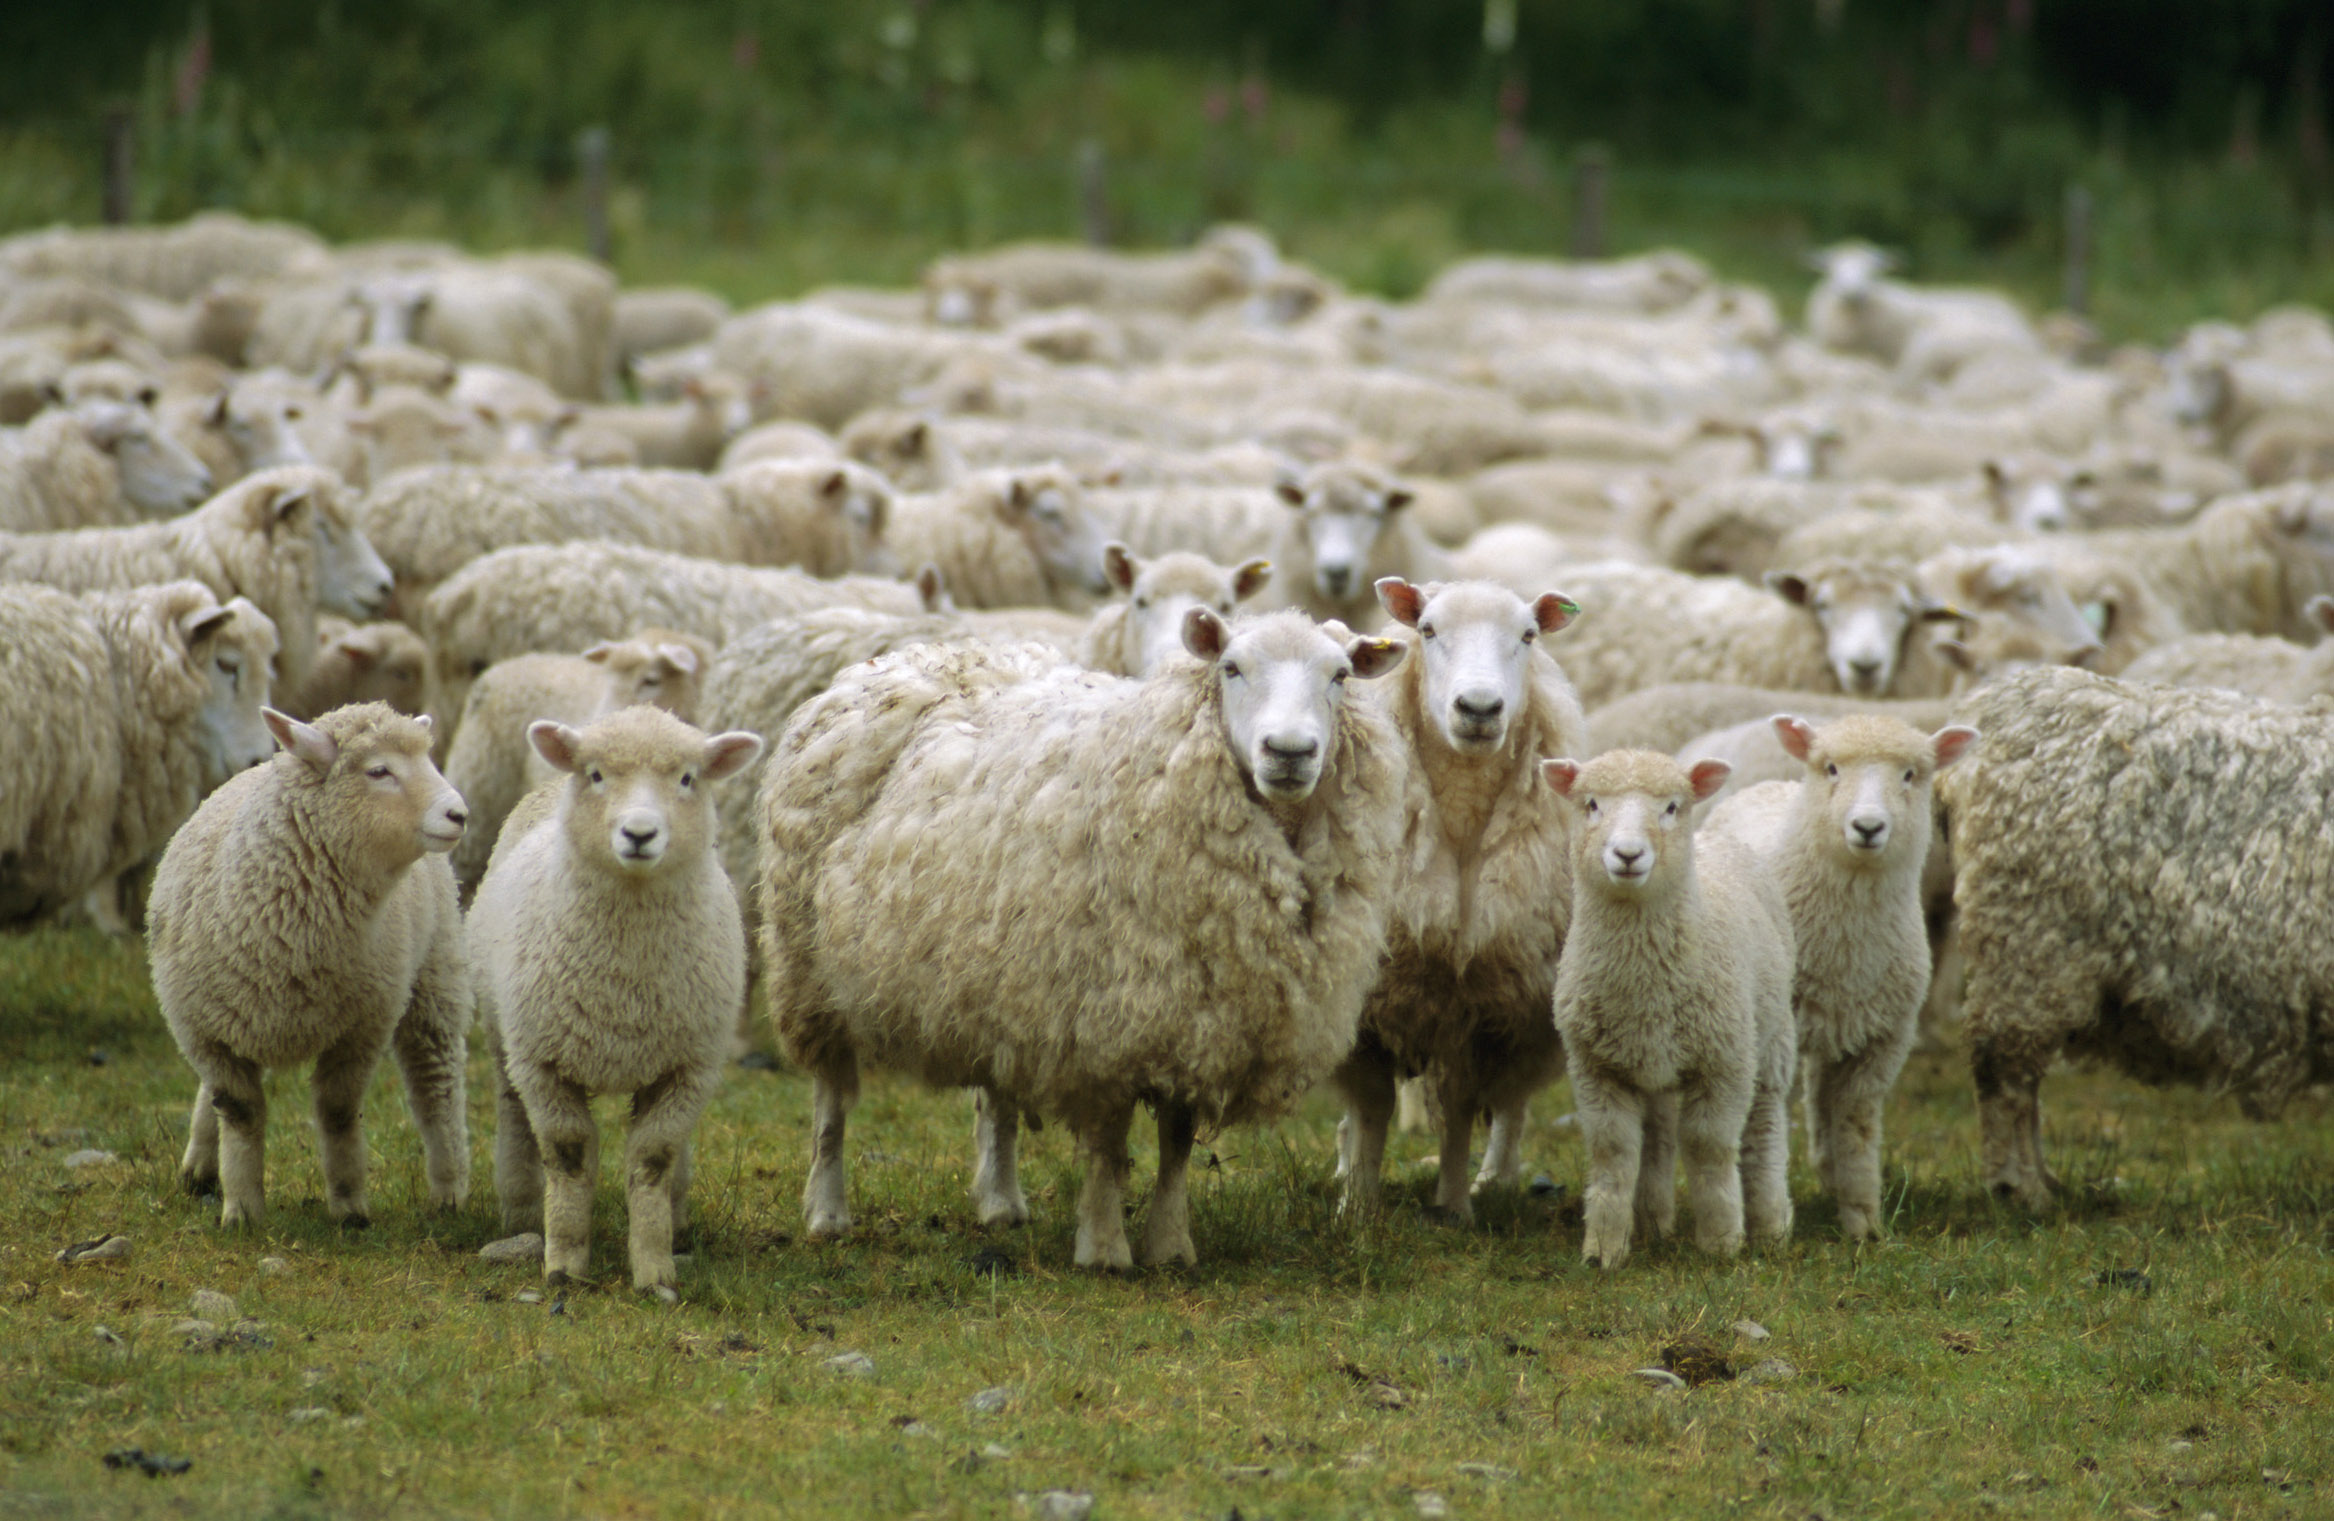 Sheep Herd at Pasture